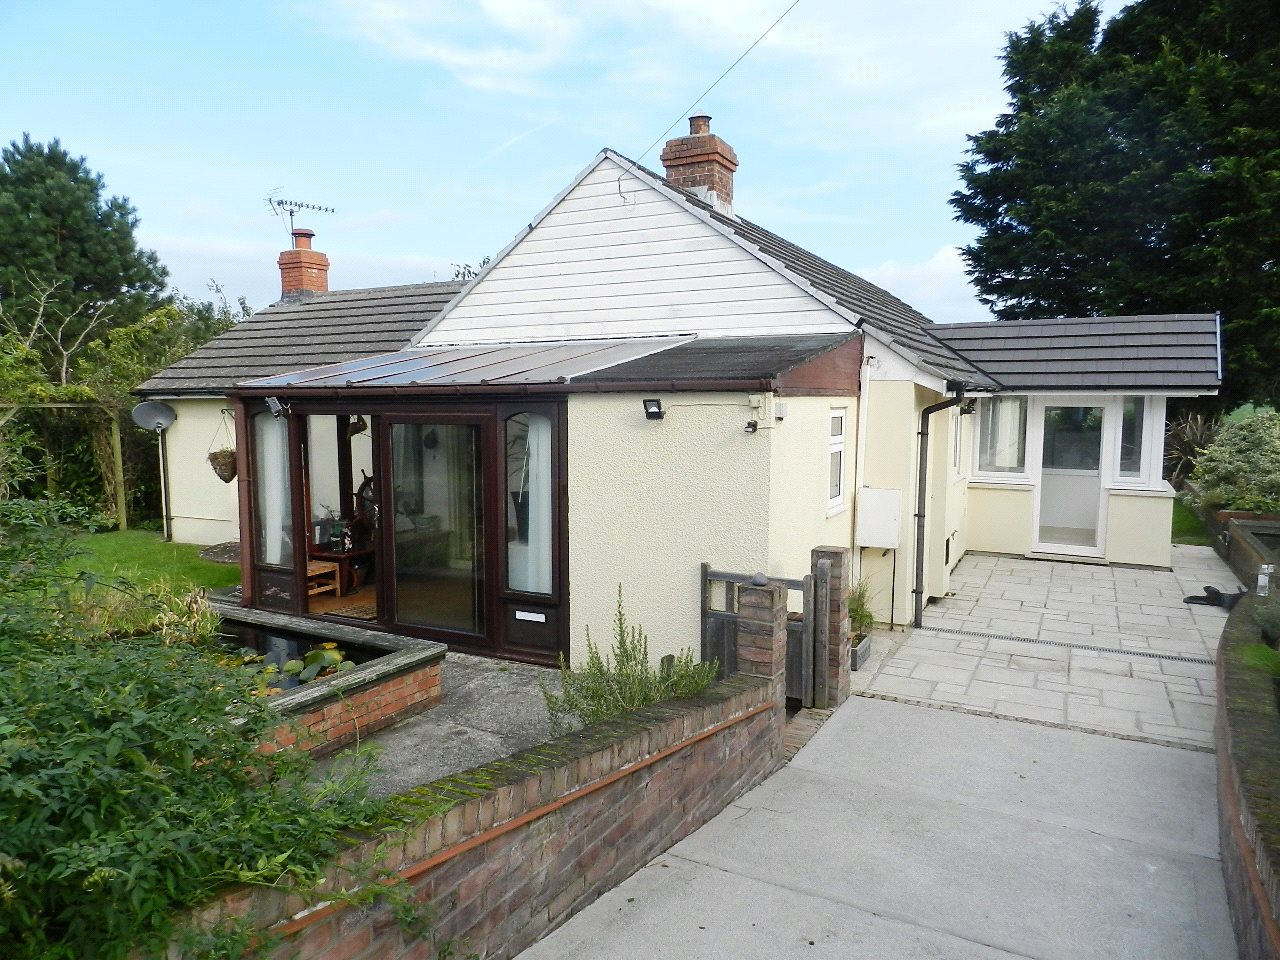 4 Bedrooms Detached Bungalow for sale in Milton Gardens Bungalow, Milton Gardens, Oxland Lane, Burton, Milford Haven